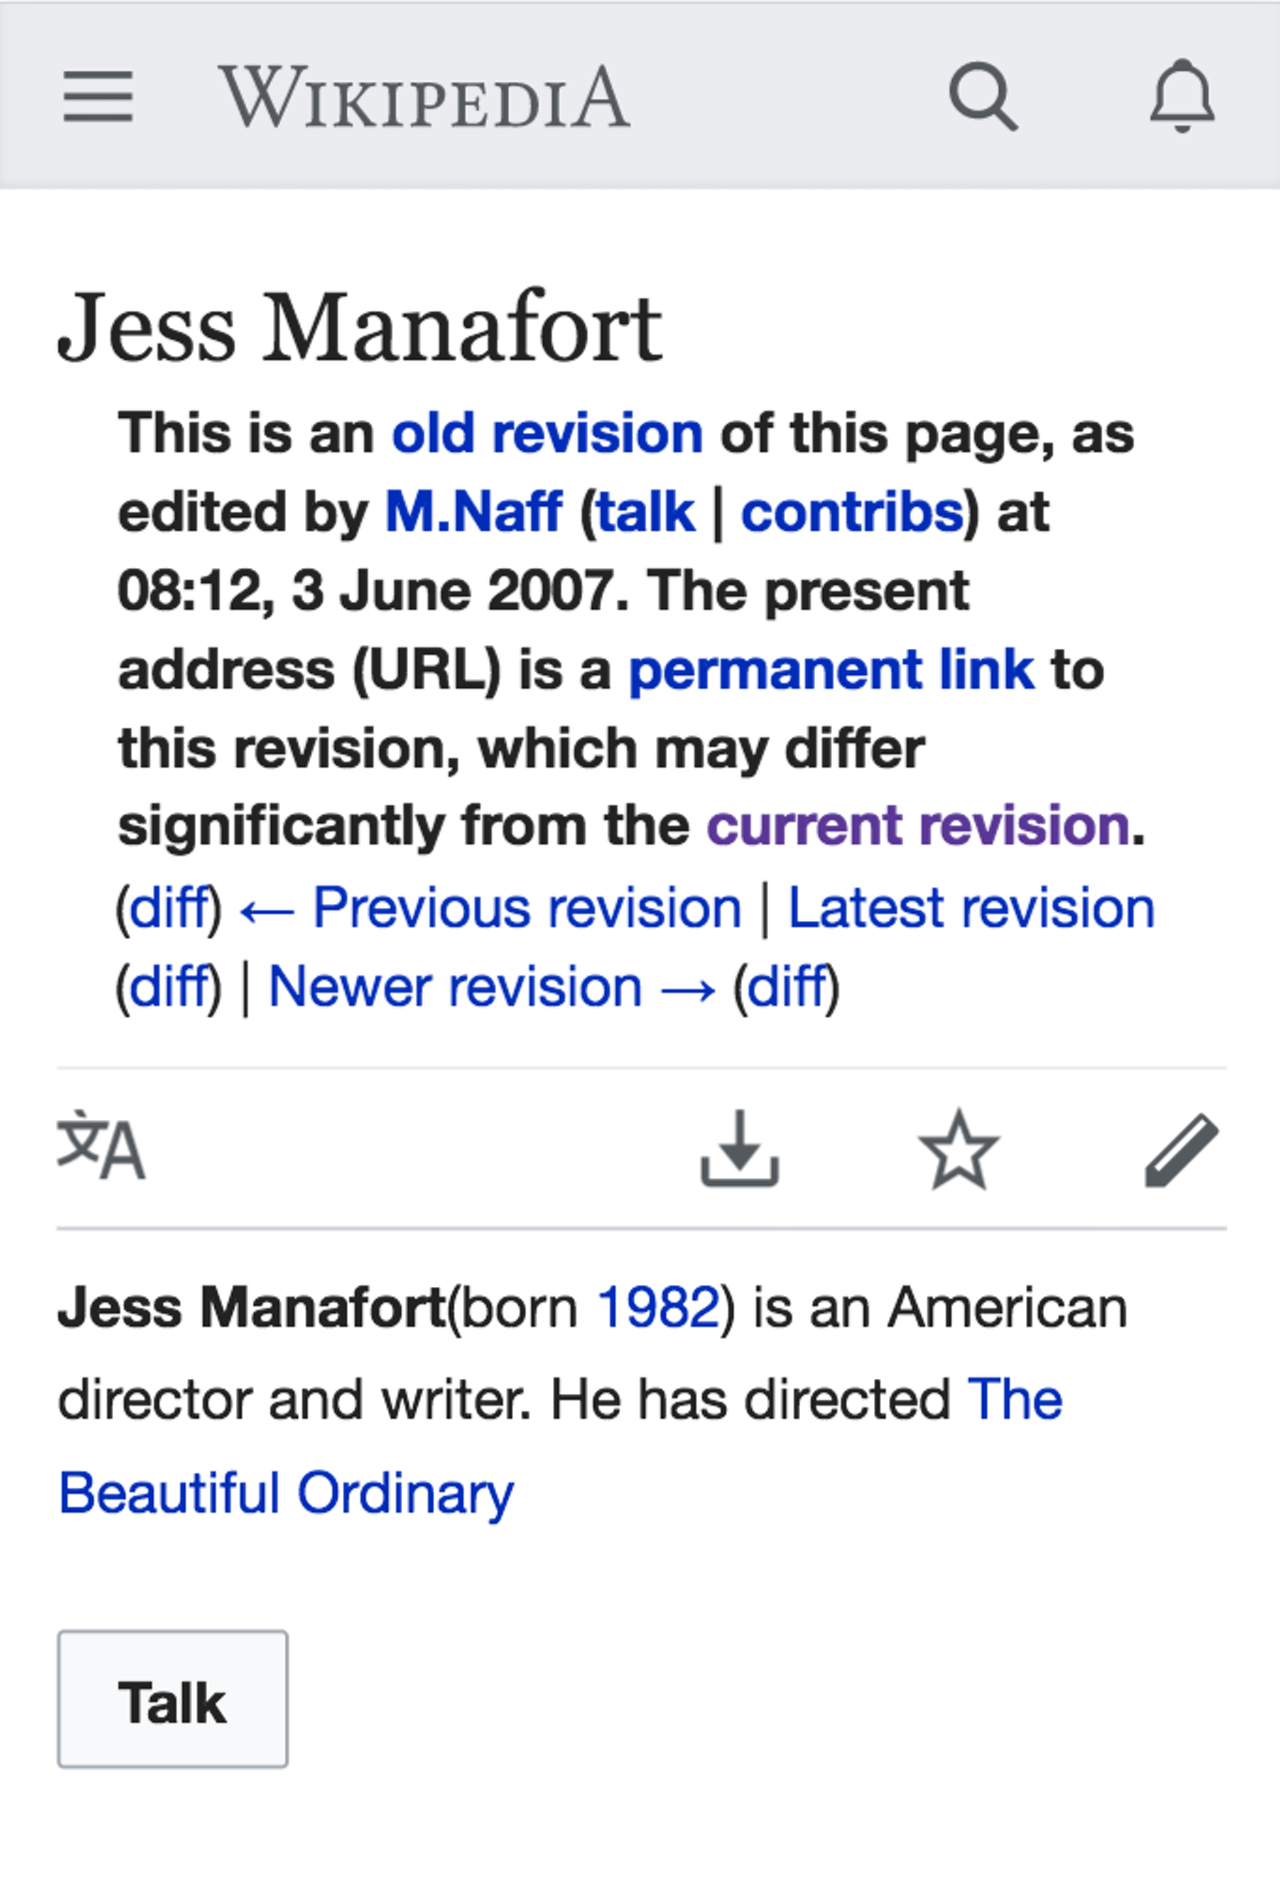 The original version of Jess Manafort's Wikipedia entry, created in 2007.